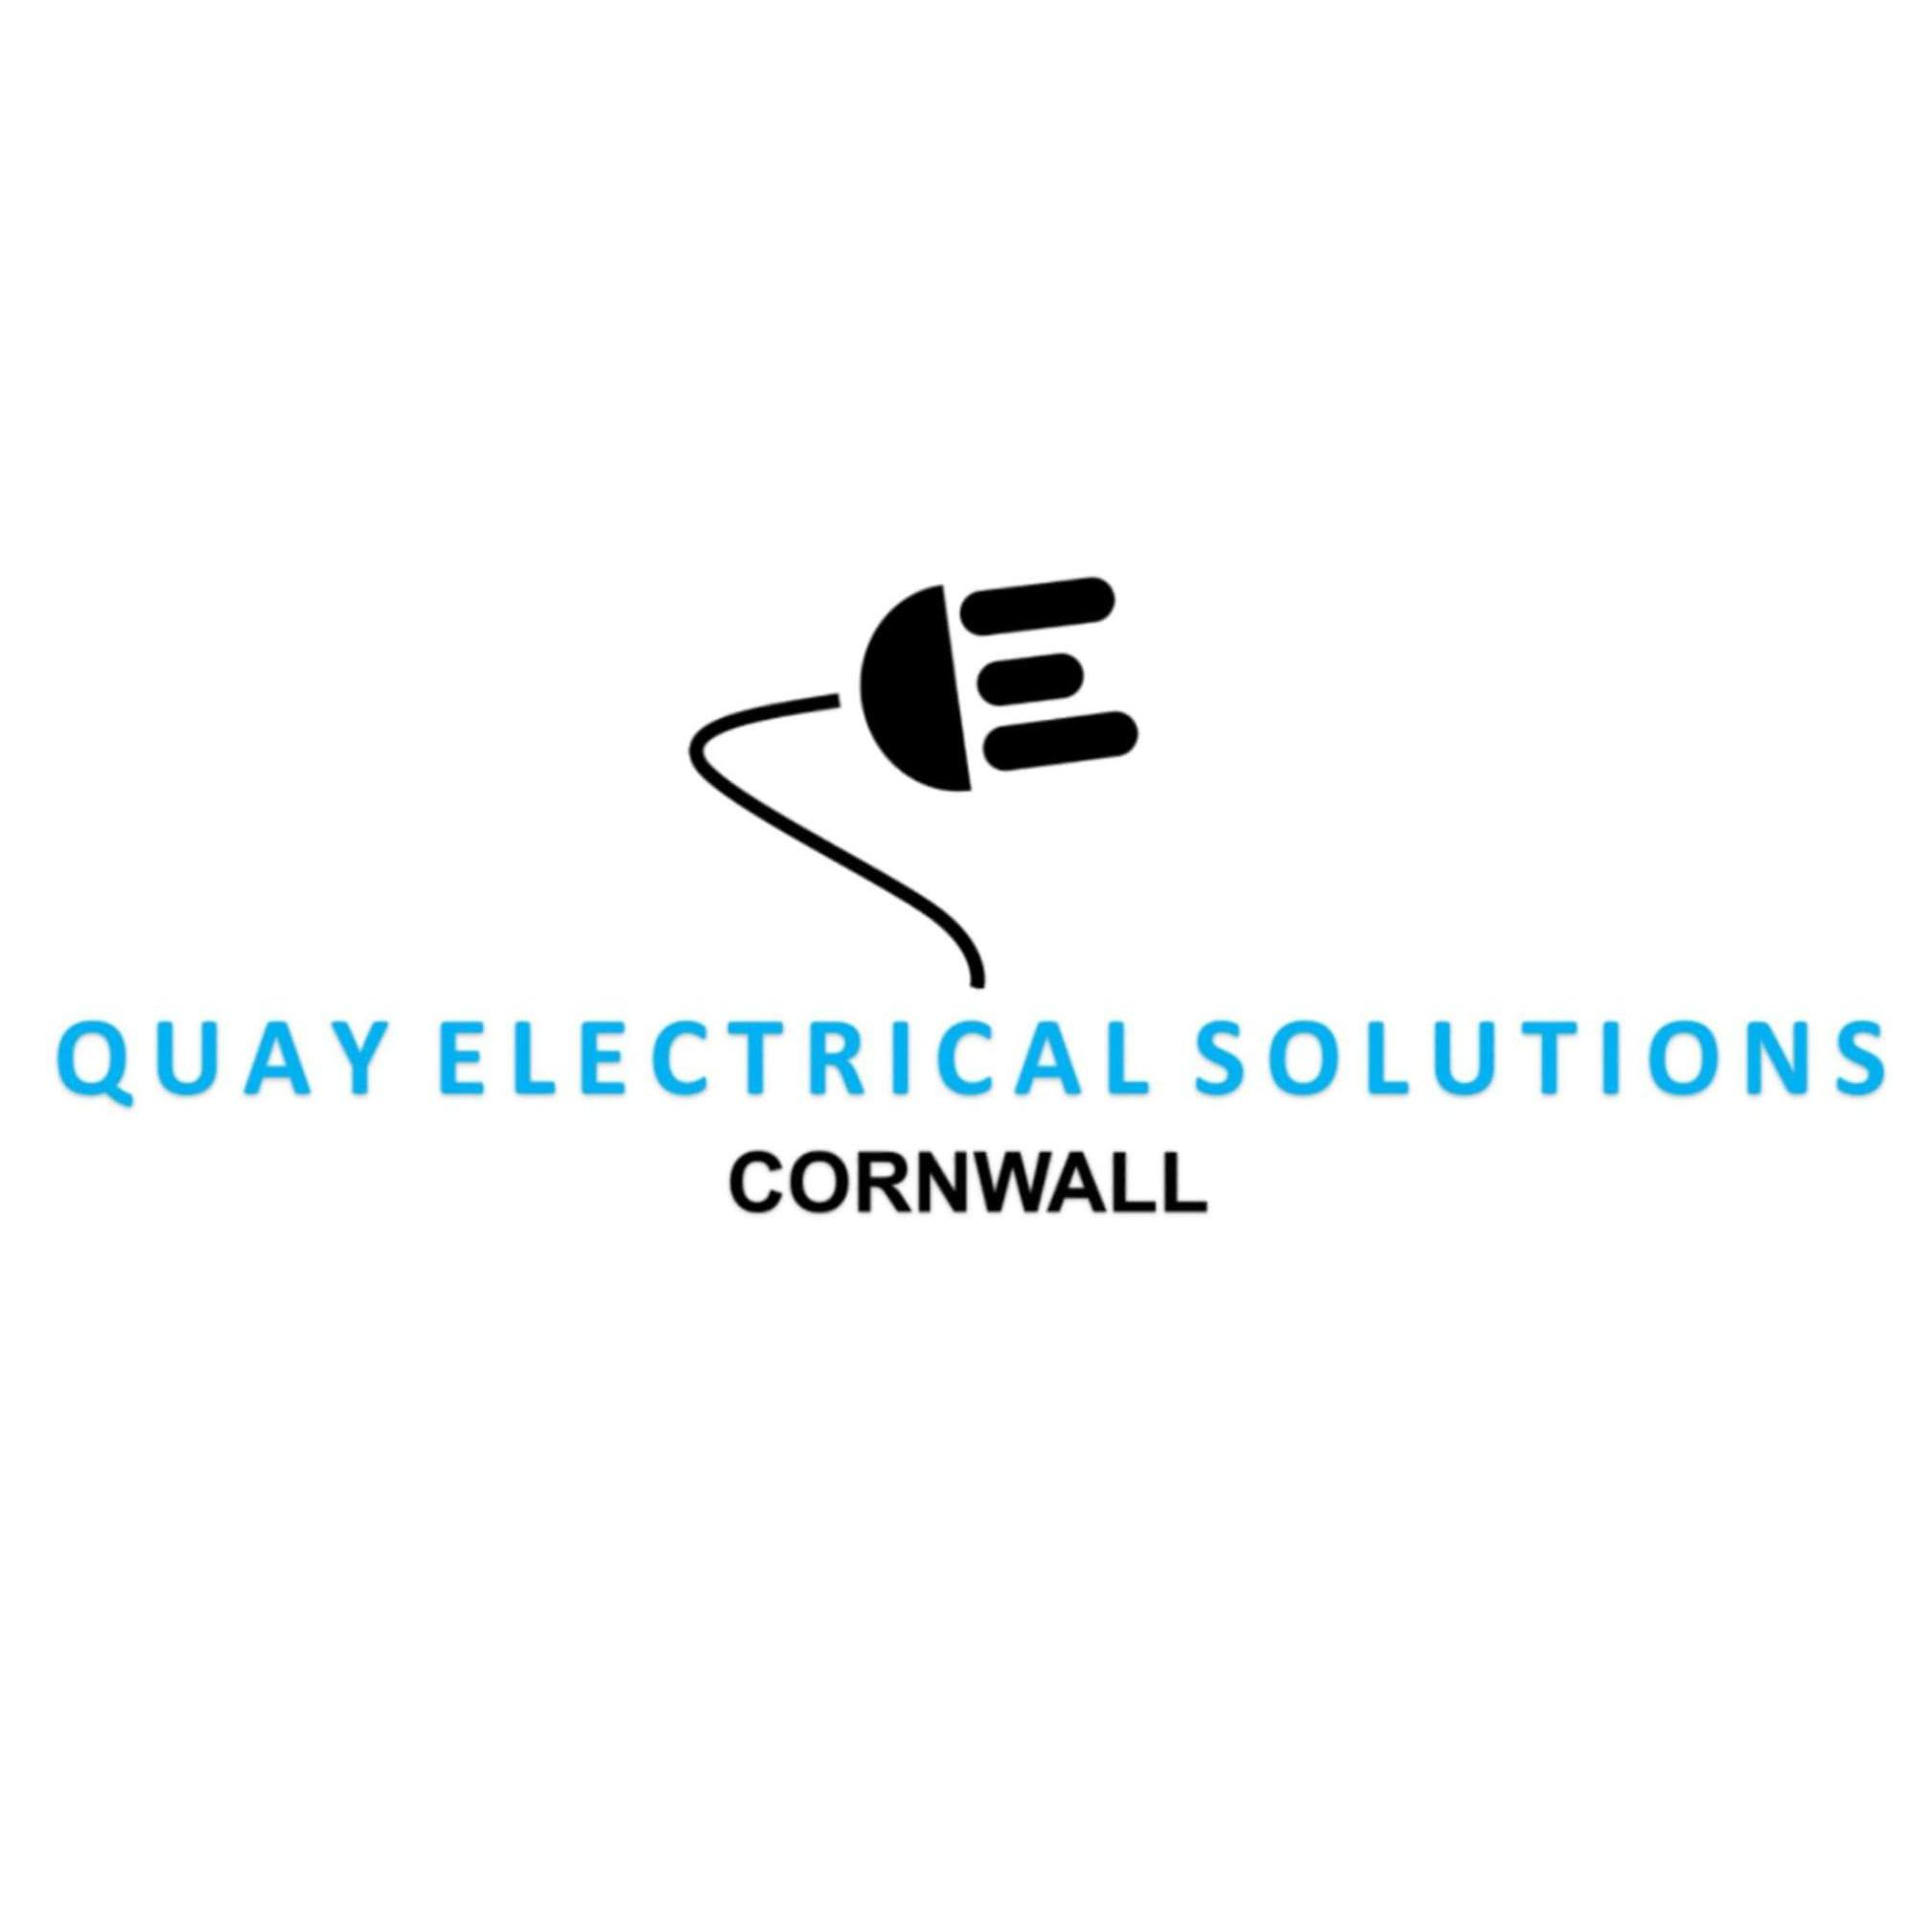 Quay Electrical Solutions